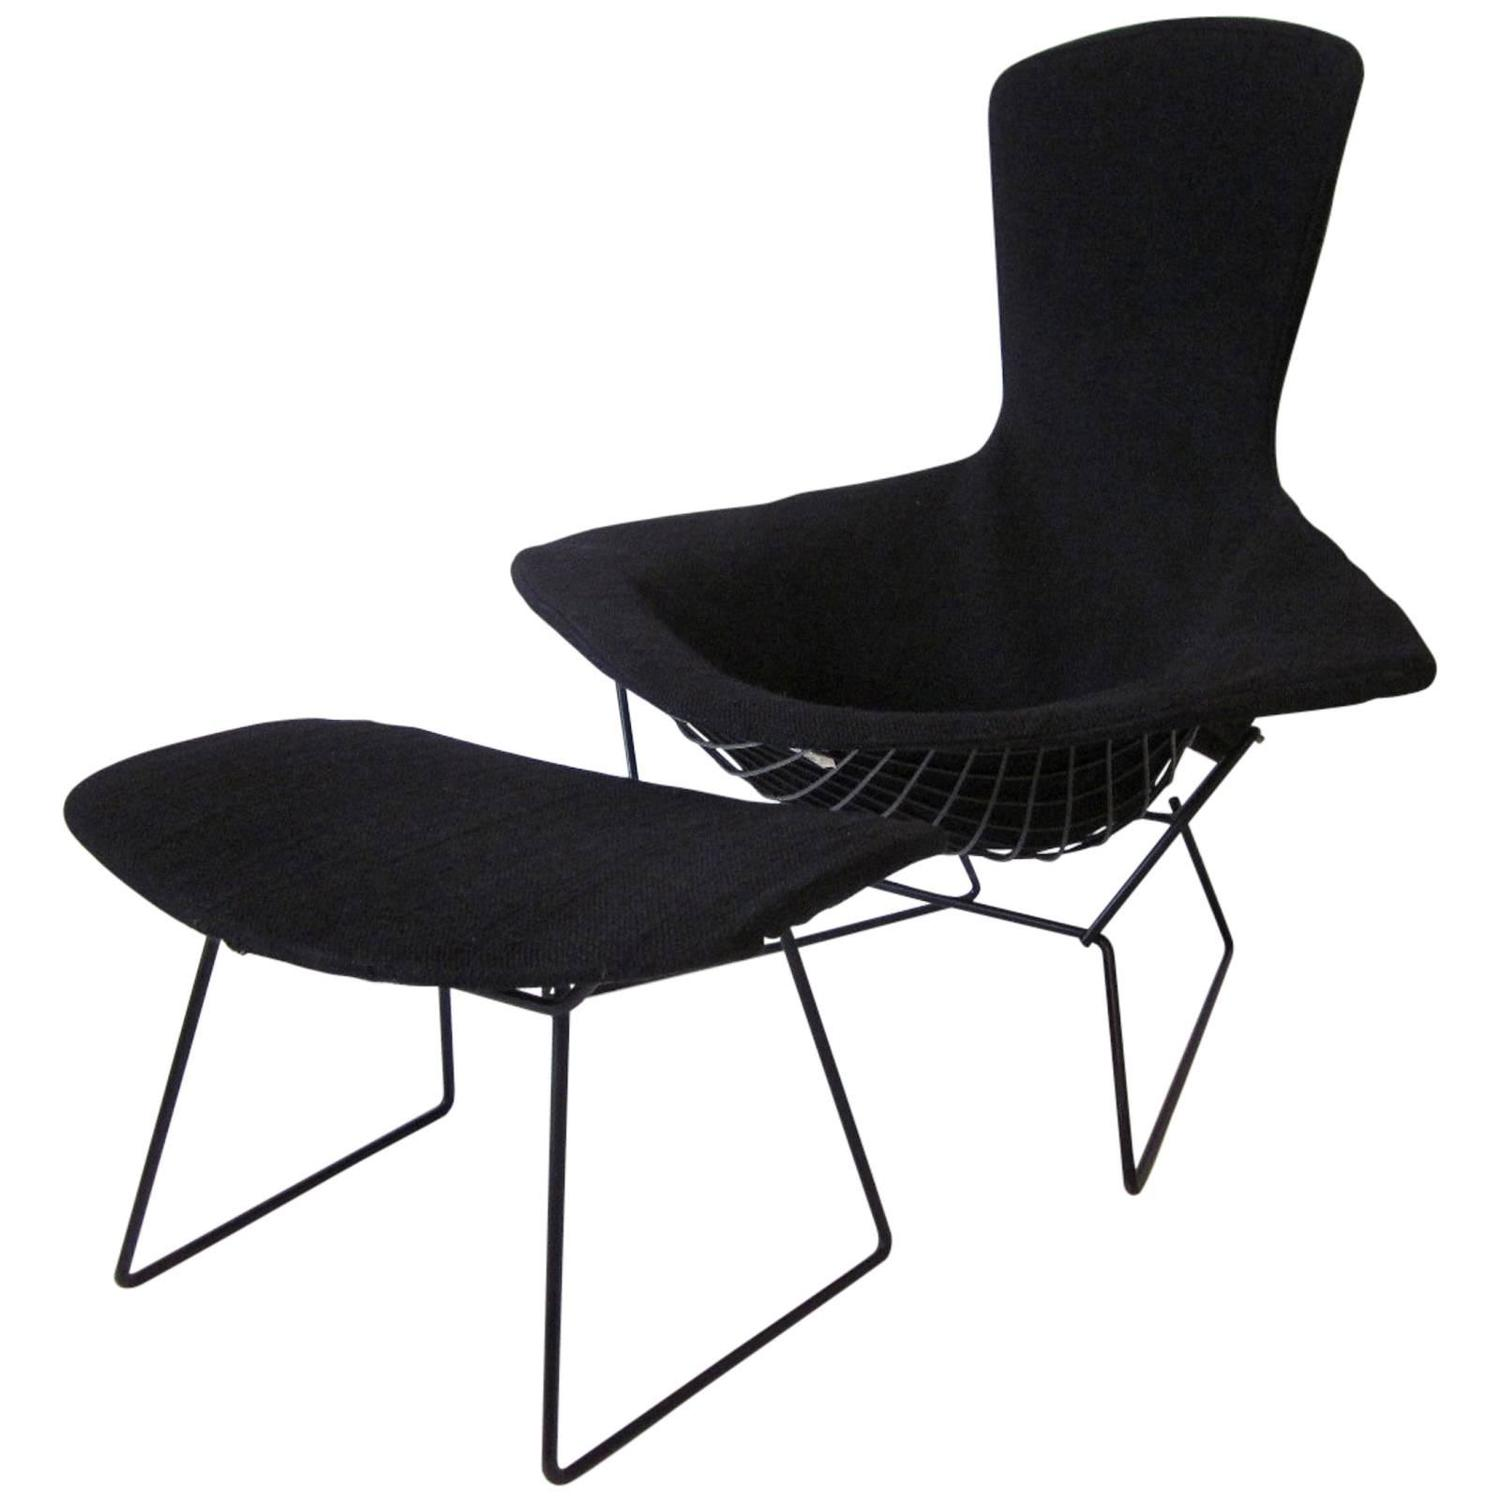 Harry Bertoia Chair Harry Bertoia Bird Chair And Ottoman For Knoll At 1stdibs